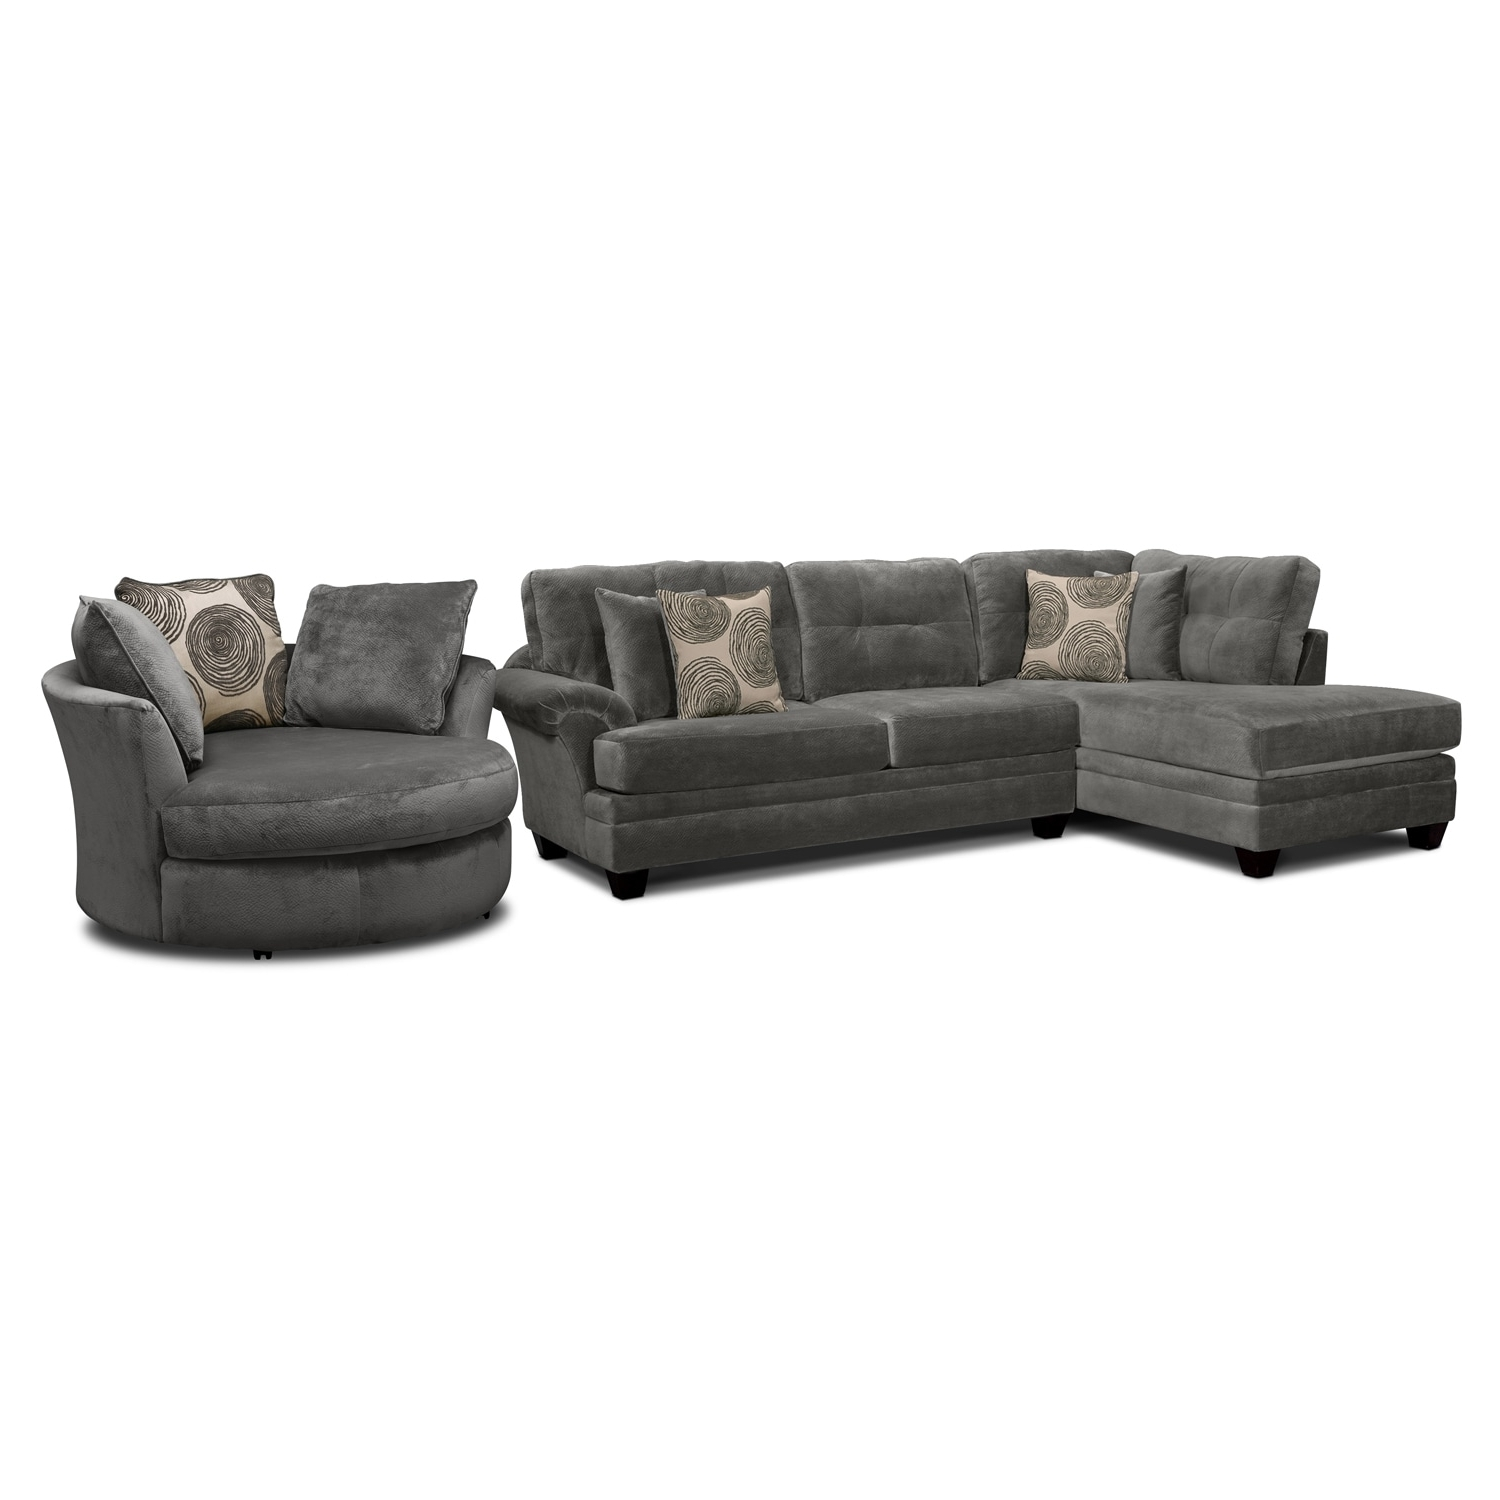 Sofas With Swivel Chair Regarding Most Popular Cordelle 2 Piece Left Facing Chaise Sectional And Swivel Chair Set (View 7 of 20)